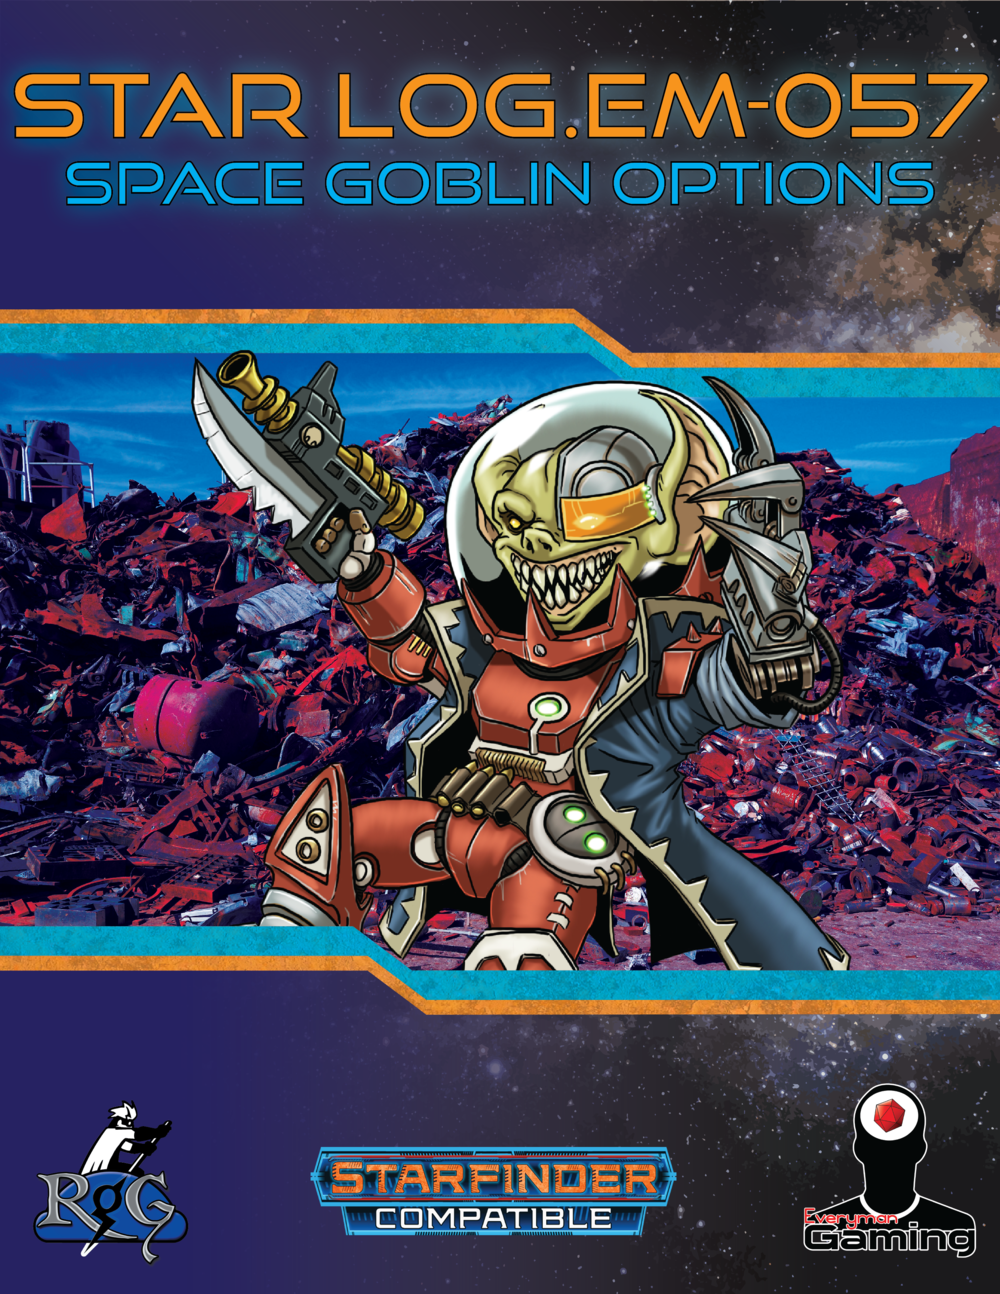 SLEM057 Space Goblin Options.png